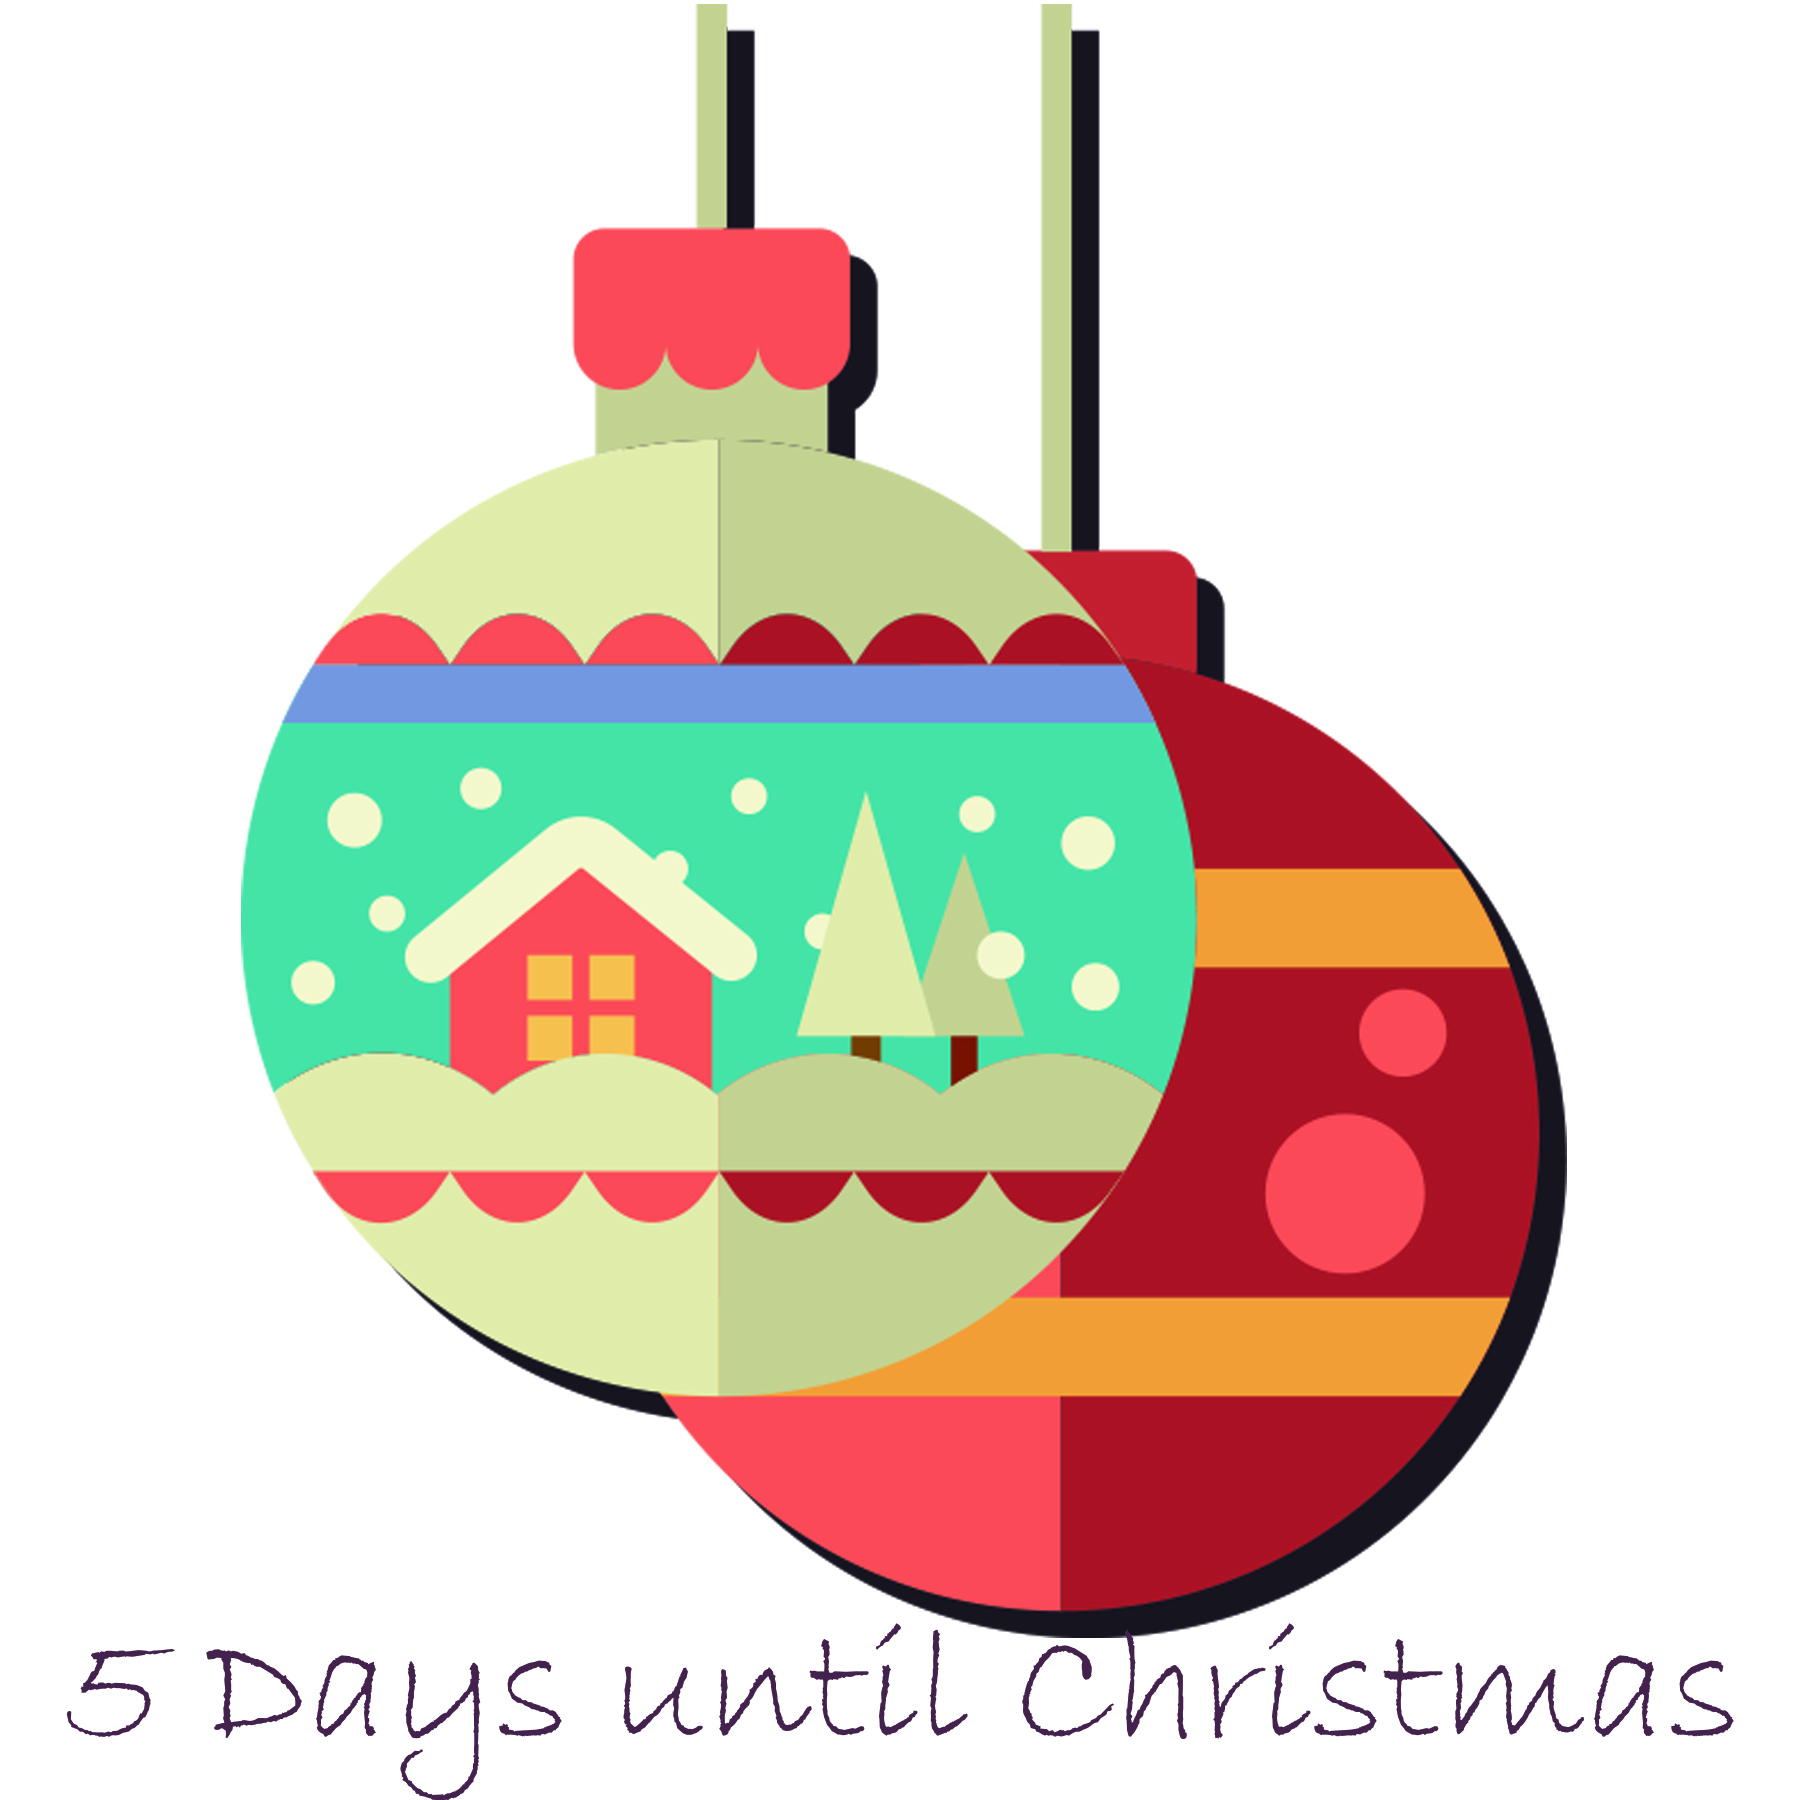 Days Until Christmas.5 Days Until Christmas Aloha Overstock